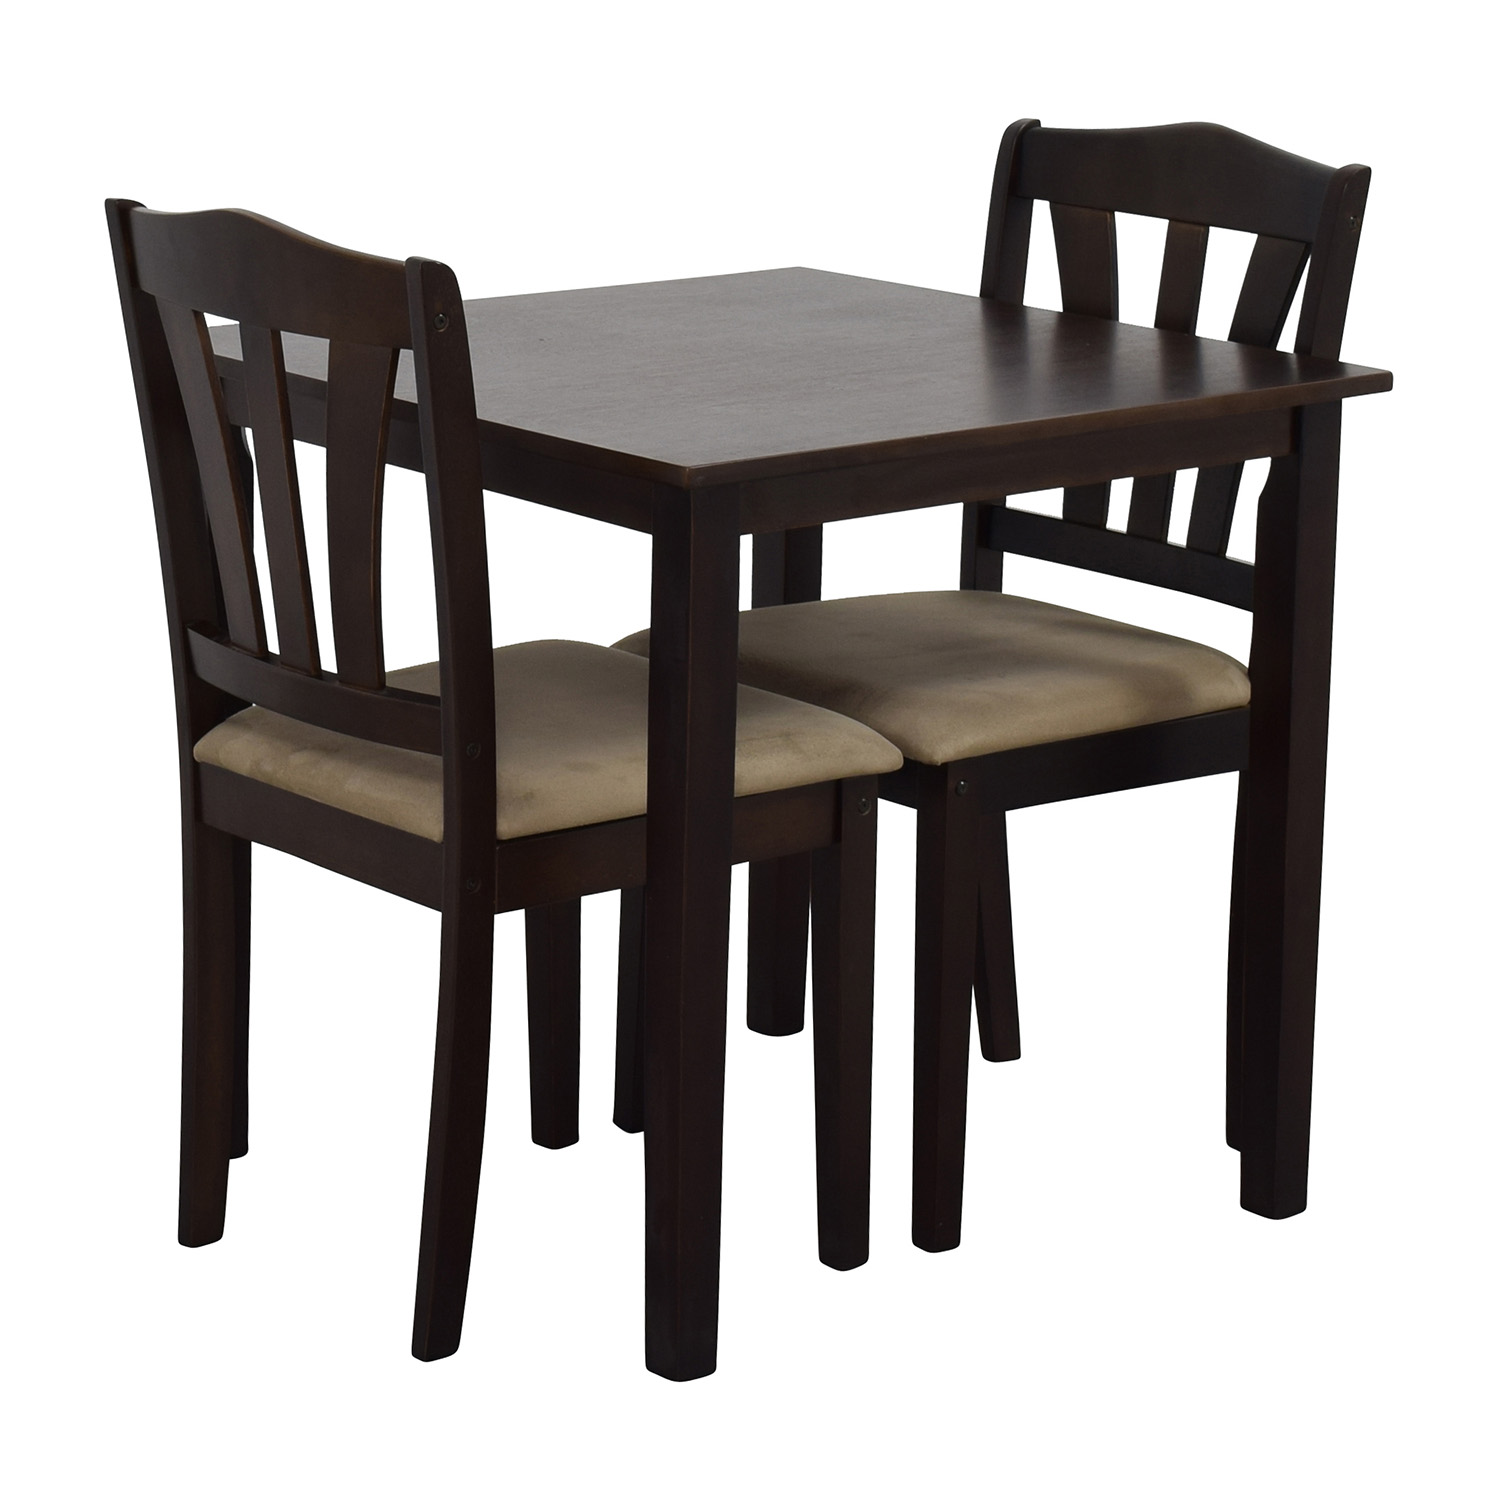 46 off wood dining table and beige upholstered chairs tables. Black Bedroom Furniture Sets. Home Design Ideas